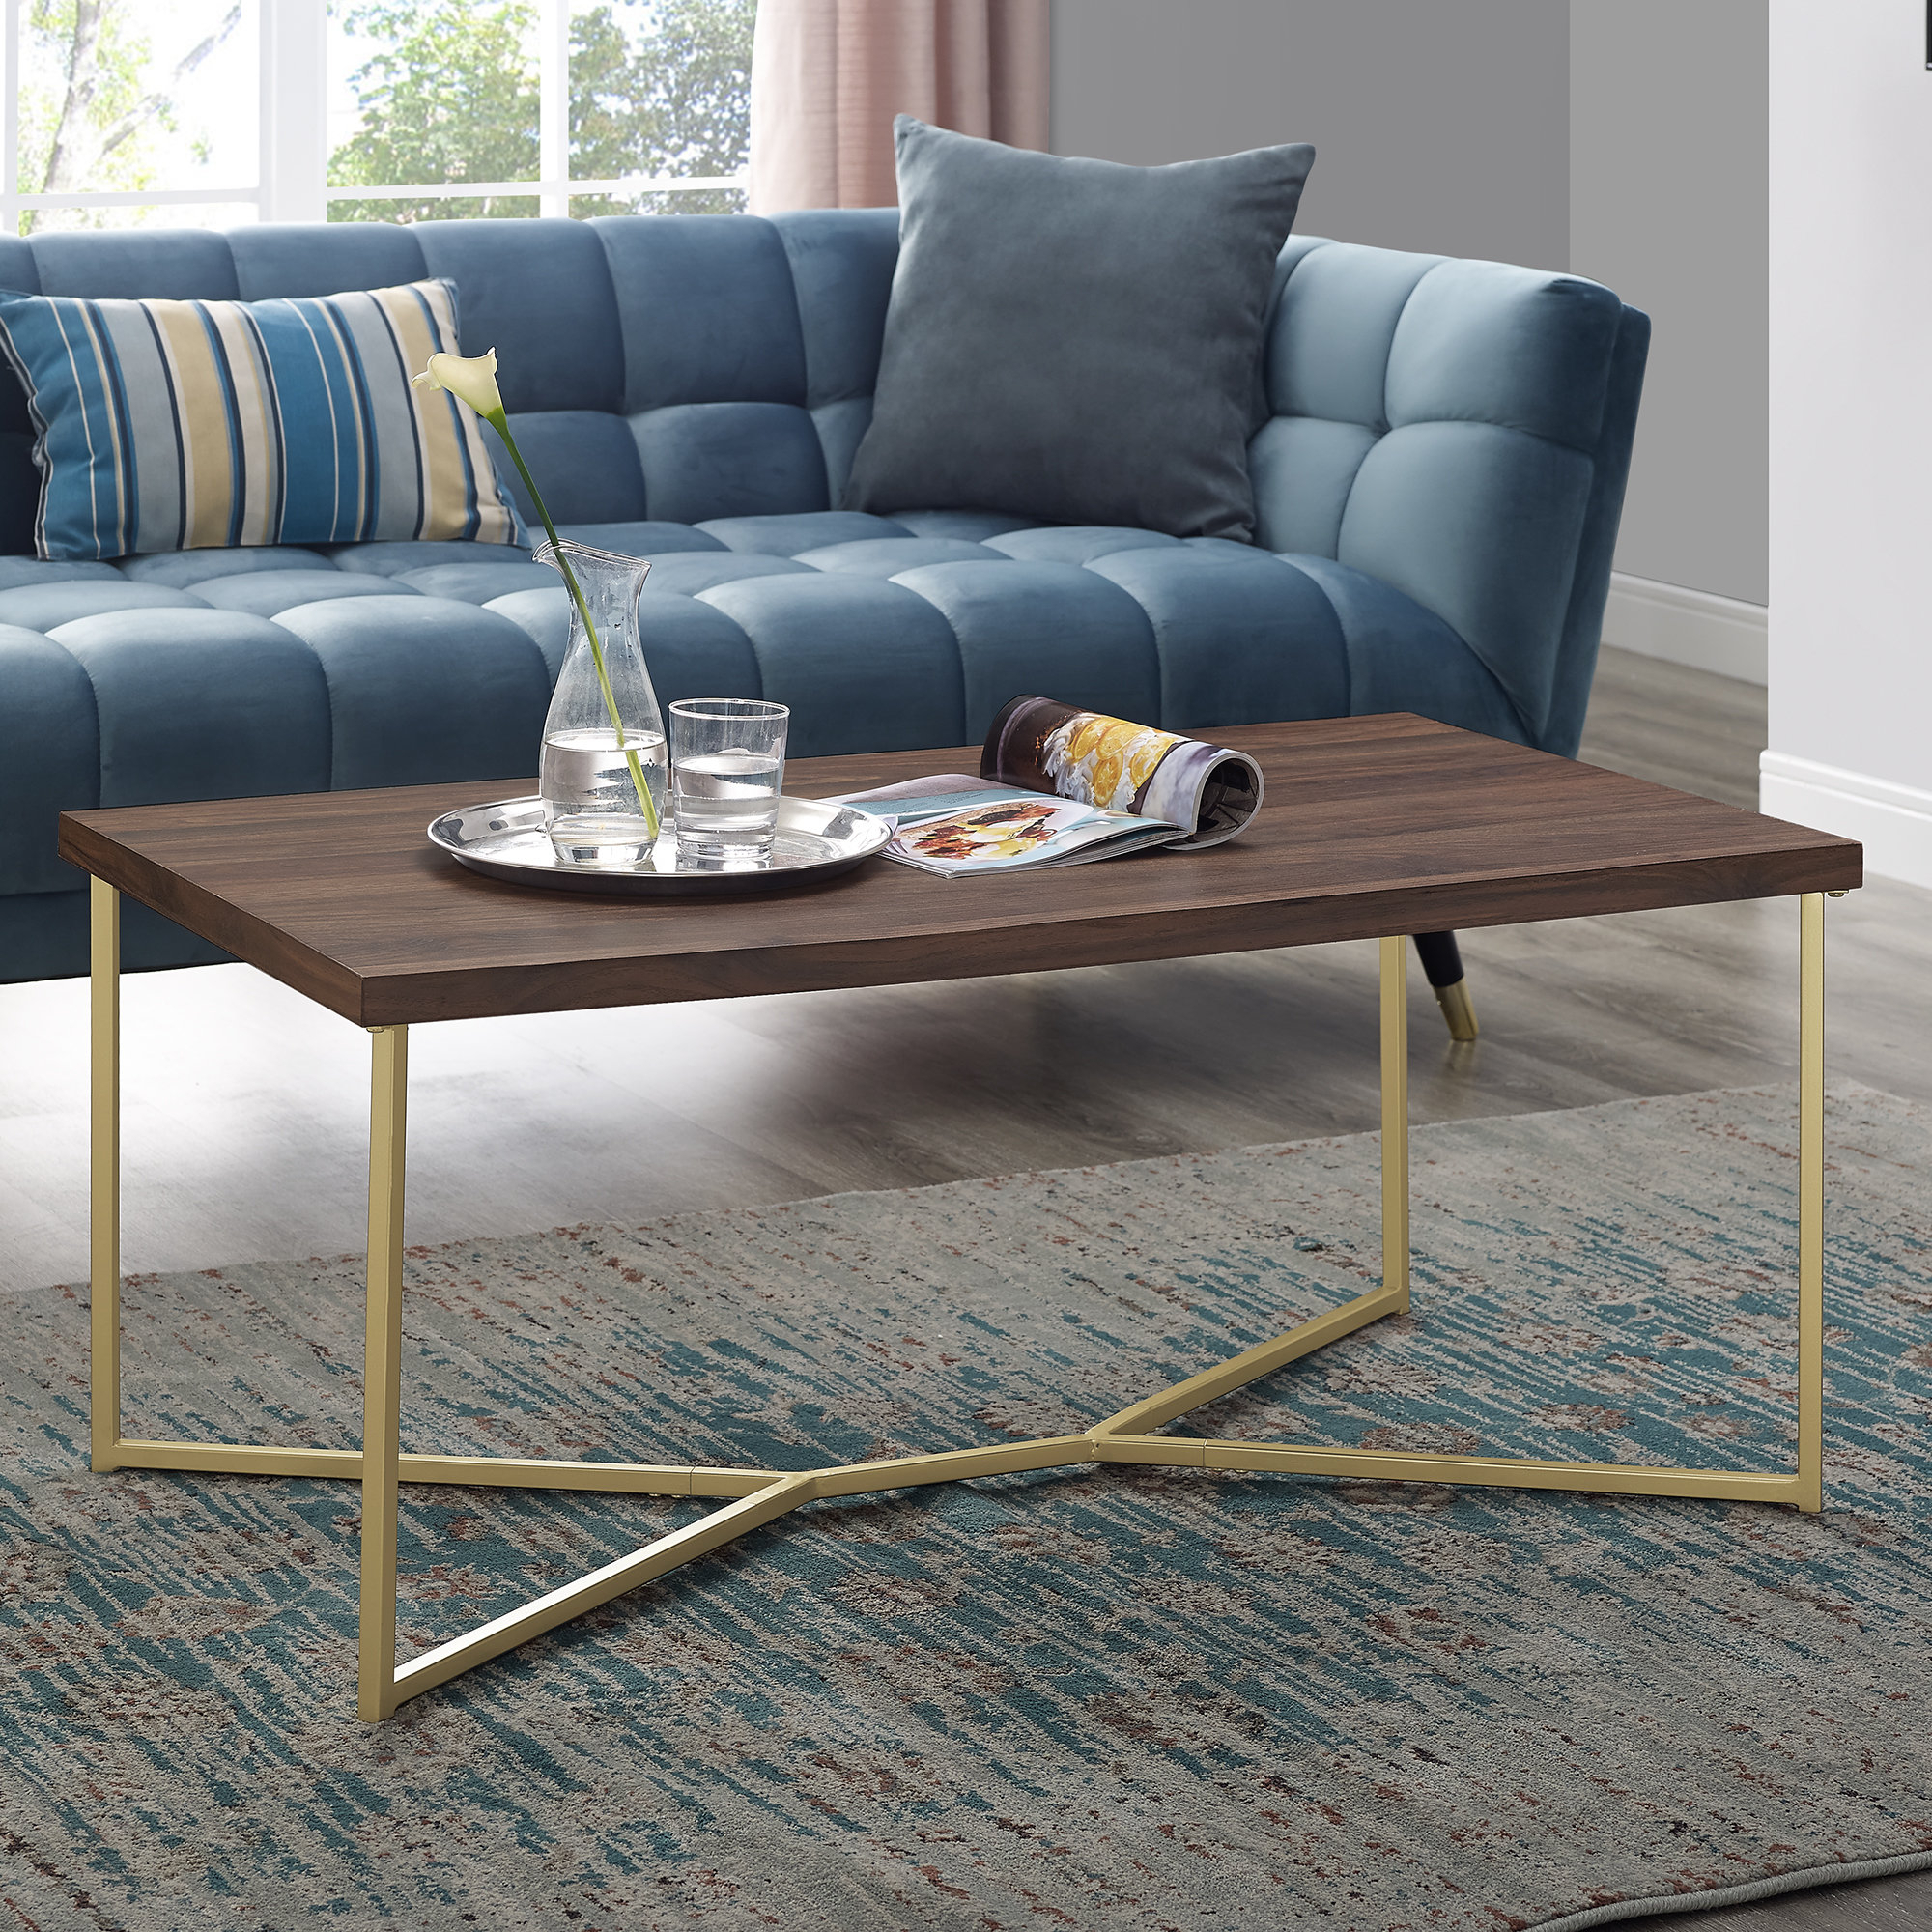 Marble/granite Top Coffee Tables You'll Love (View 15 of 20)